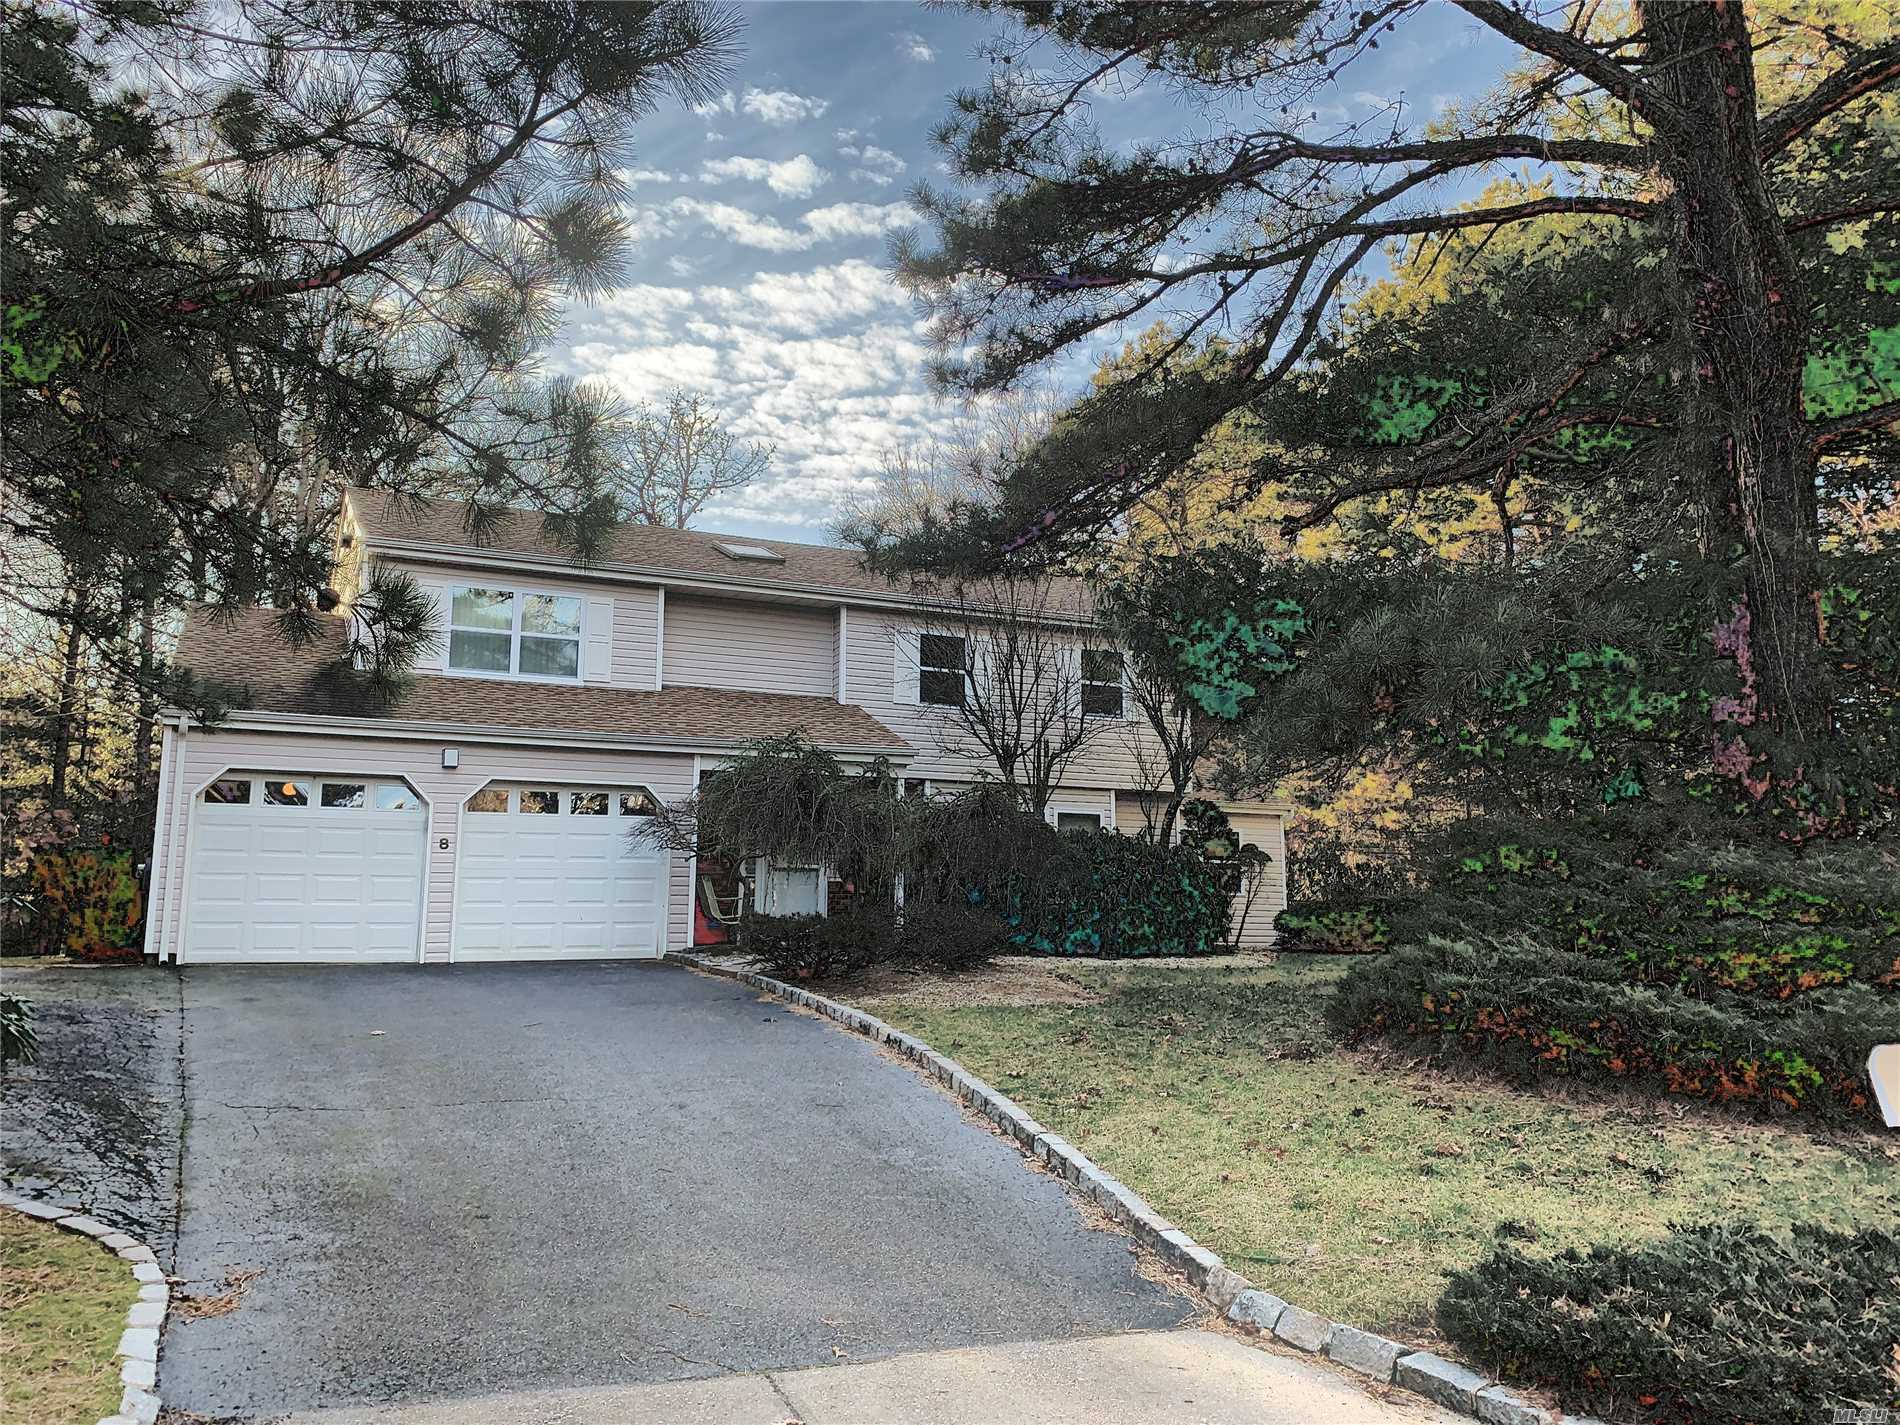 If You Love Privacy Come And See This Great Four Bedroom 2 1/2 Bath On A Shy Acre Surrounded By Protected Land, Wonderful In Ground Pool. Architectural Roof, Newer Windows And Heating System. Come Make This Home Yours!